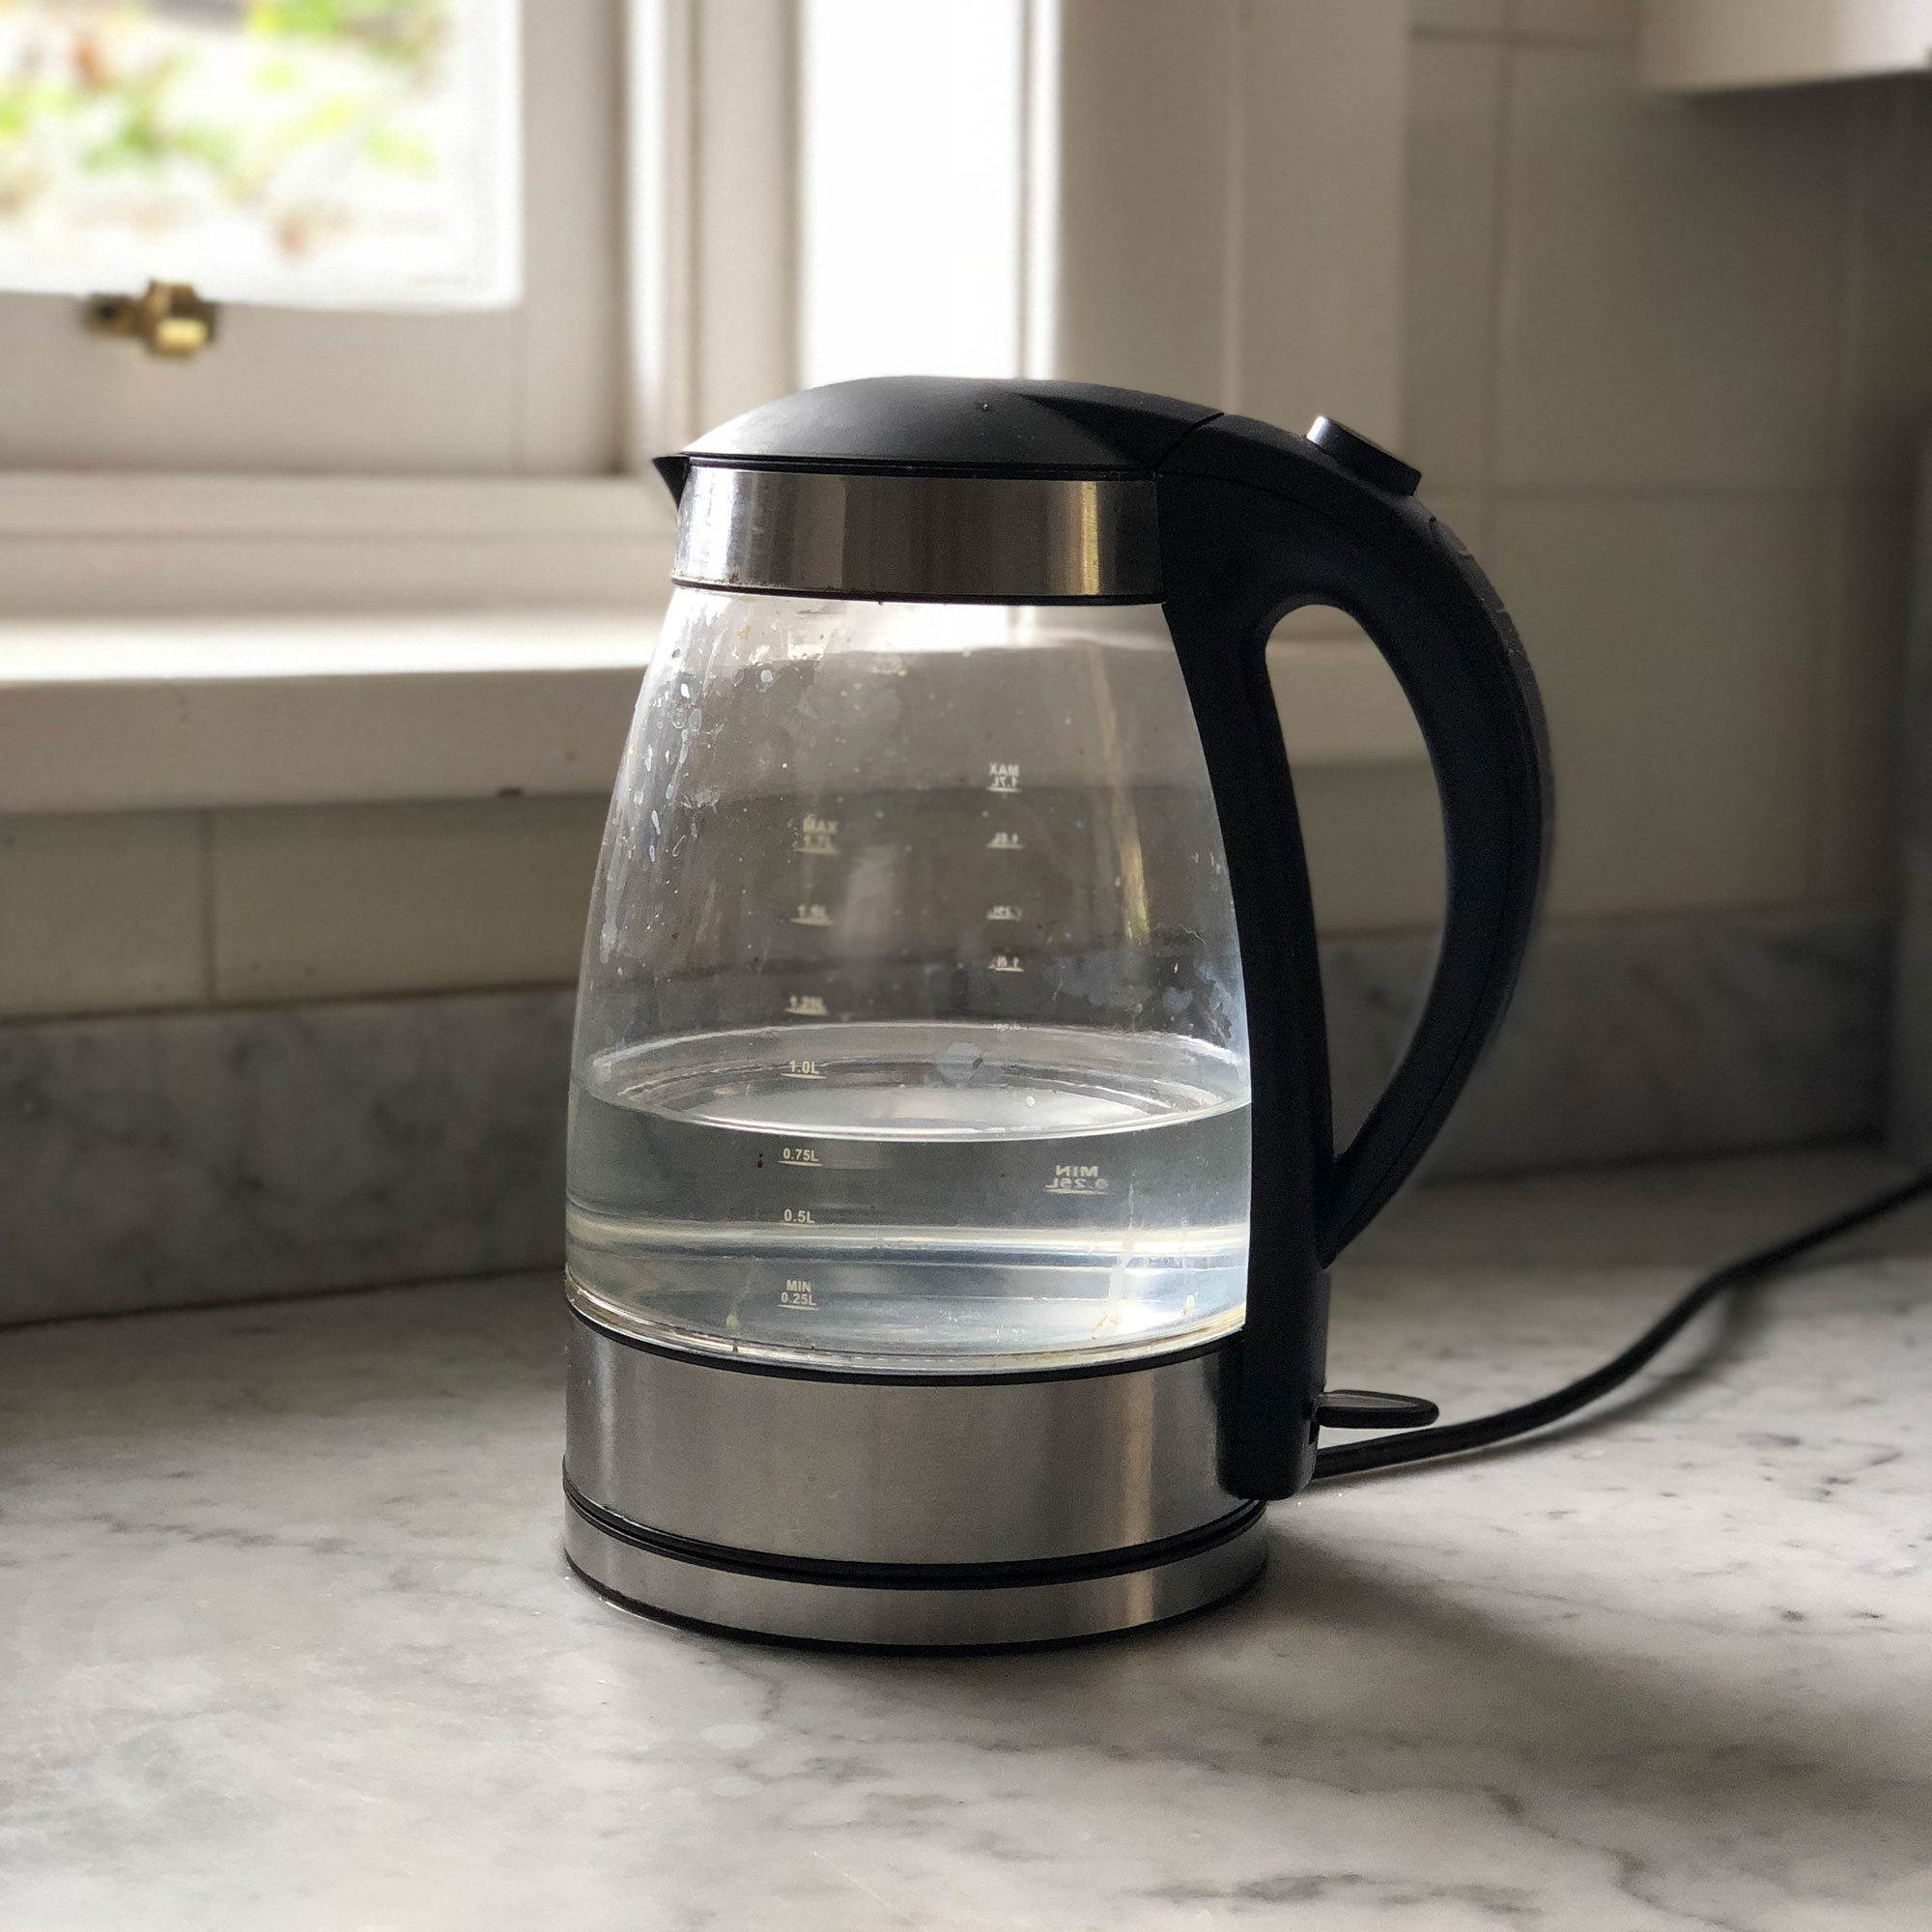 clean clear glass kettle